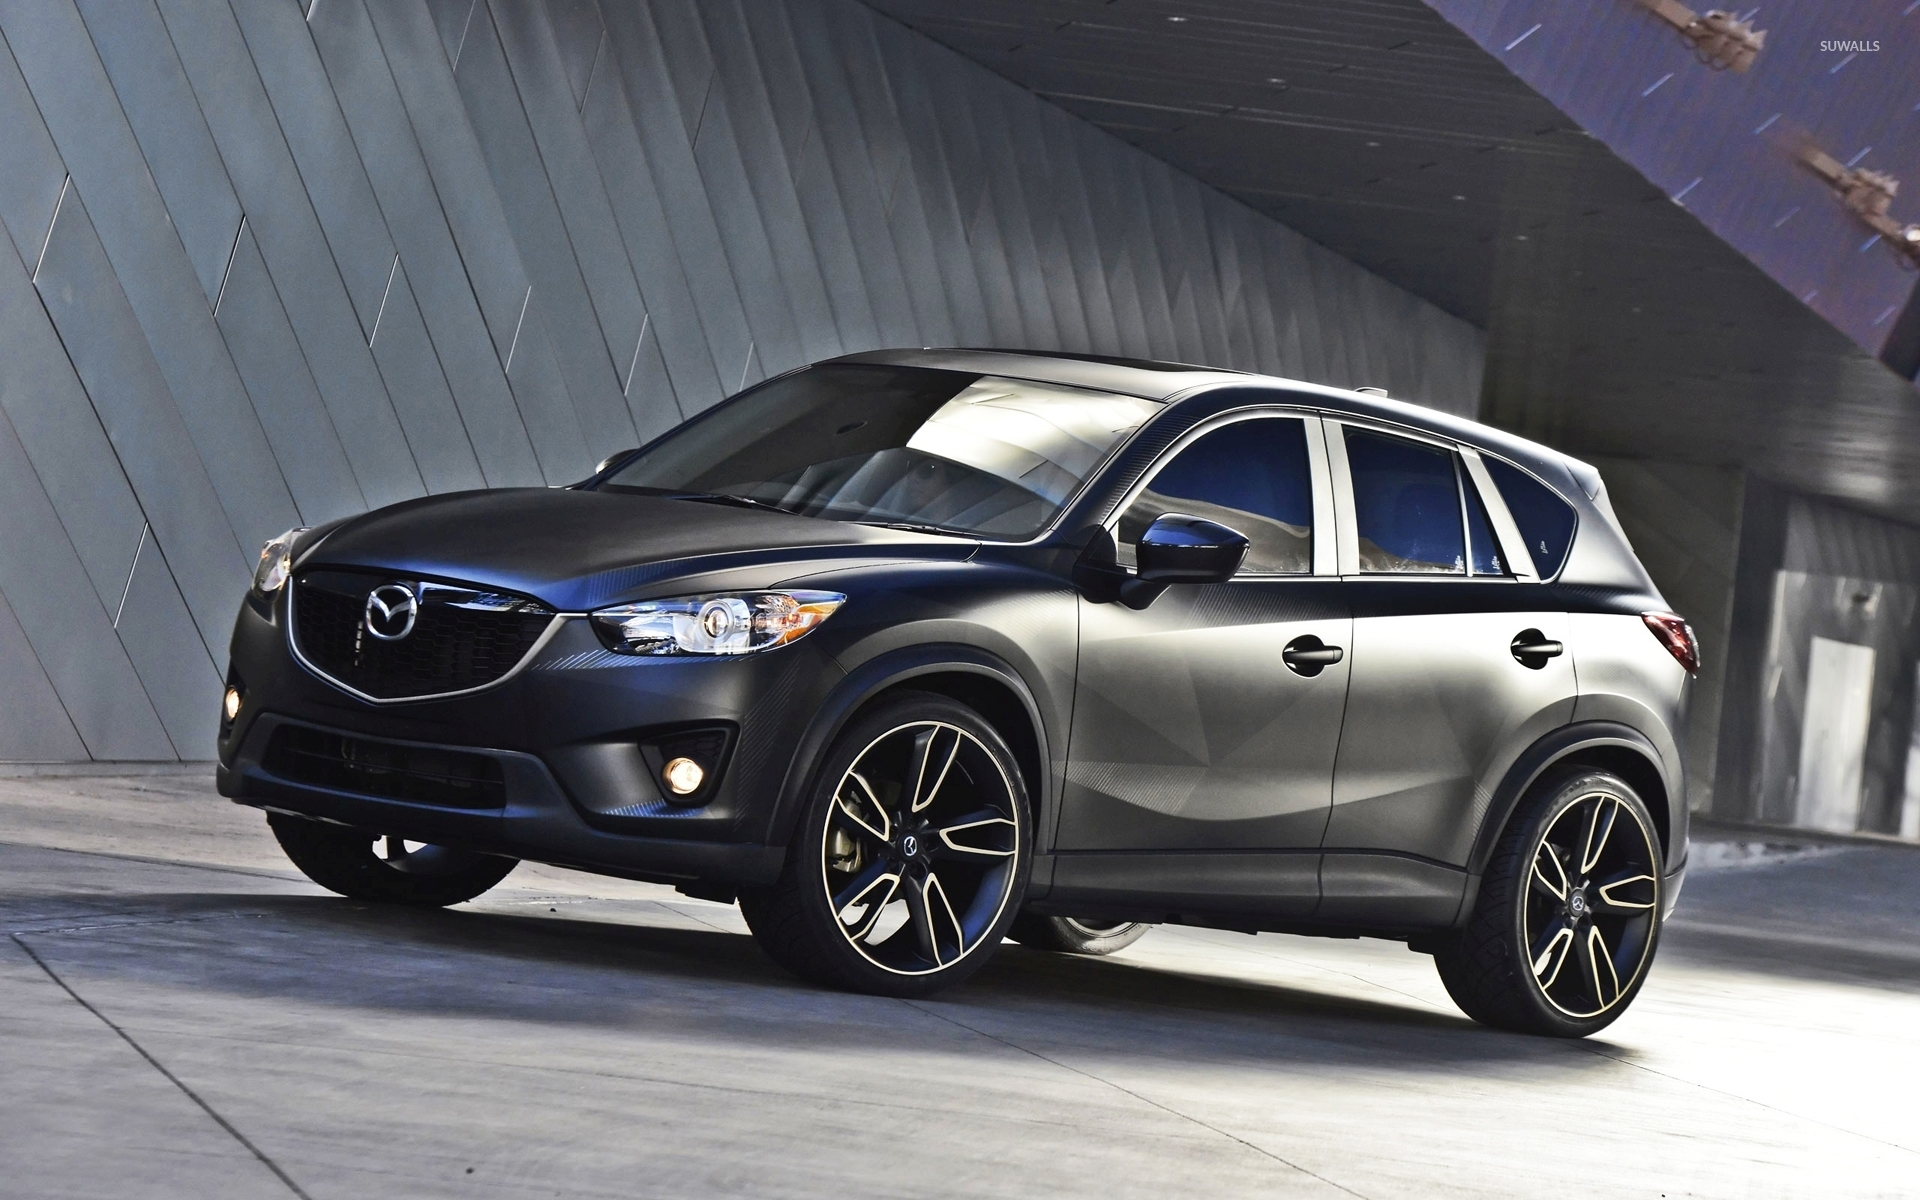 Mazda Cx 5 Wallpaper Car Wallpapers 37900